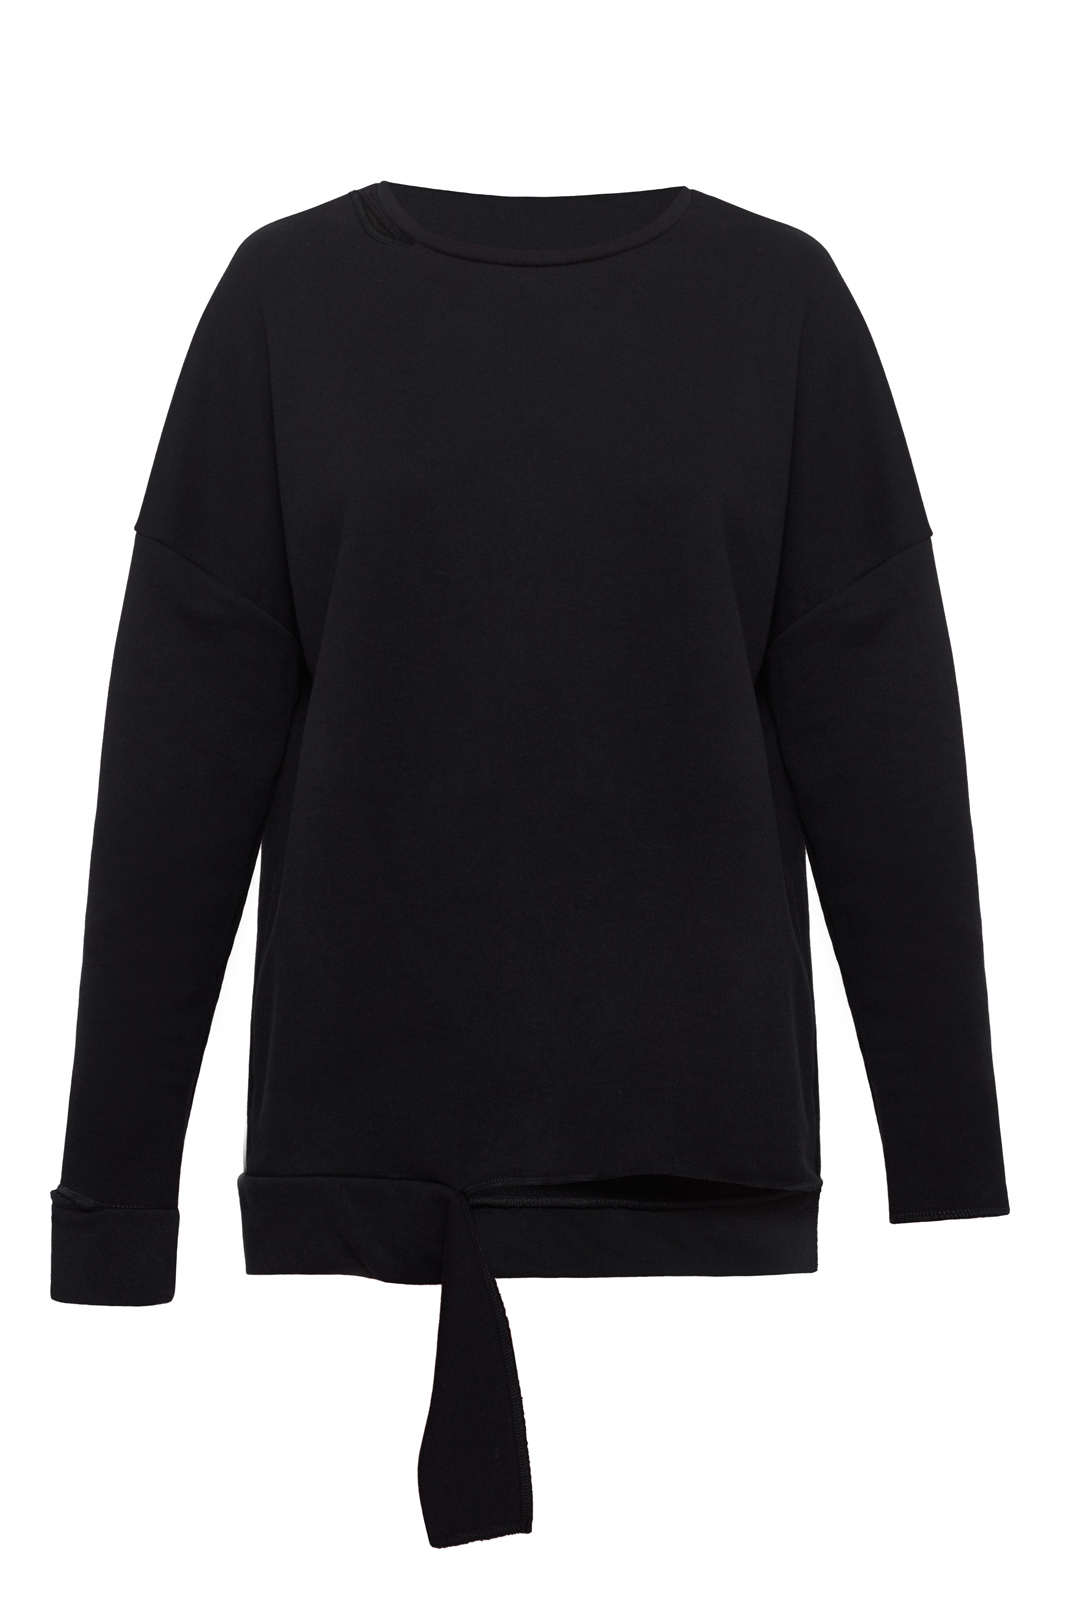 QISTINA Jumper by Naked Bruce on curated-crowd.com